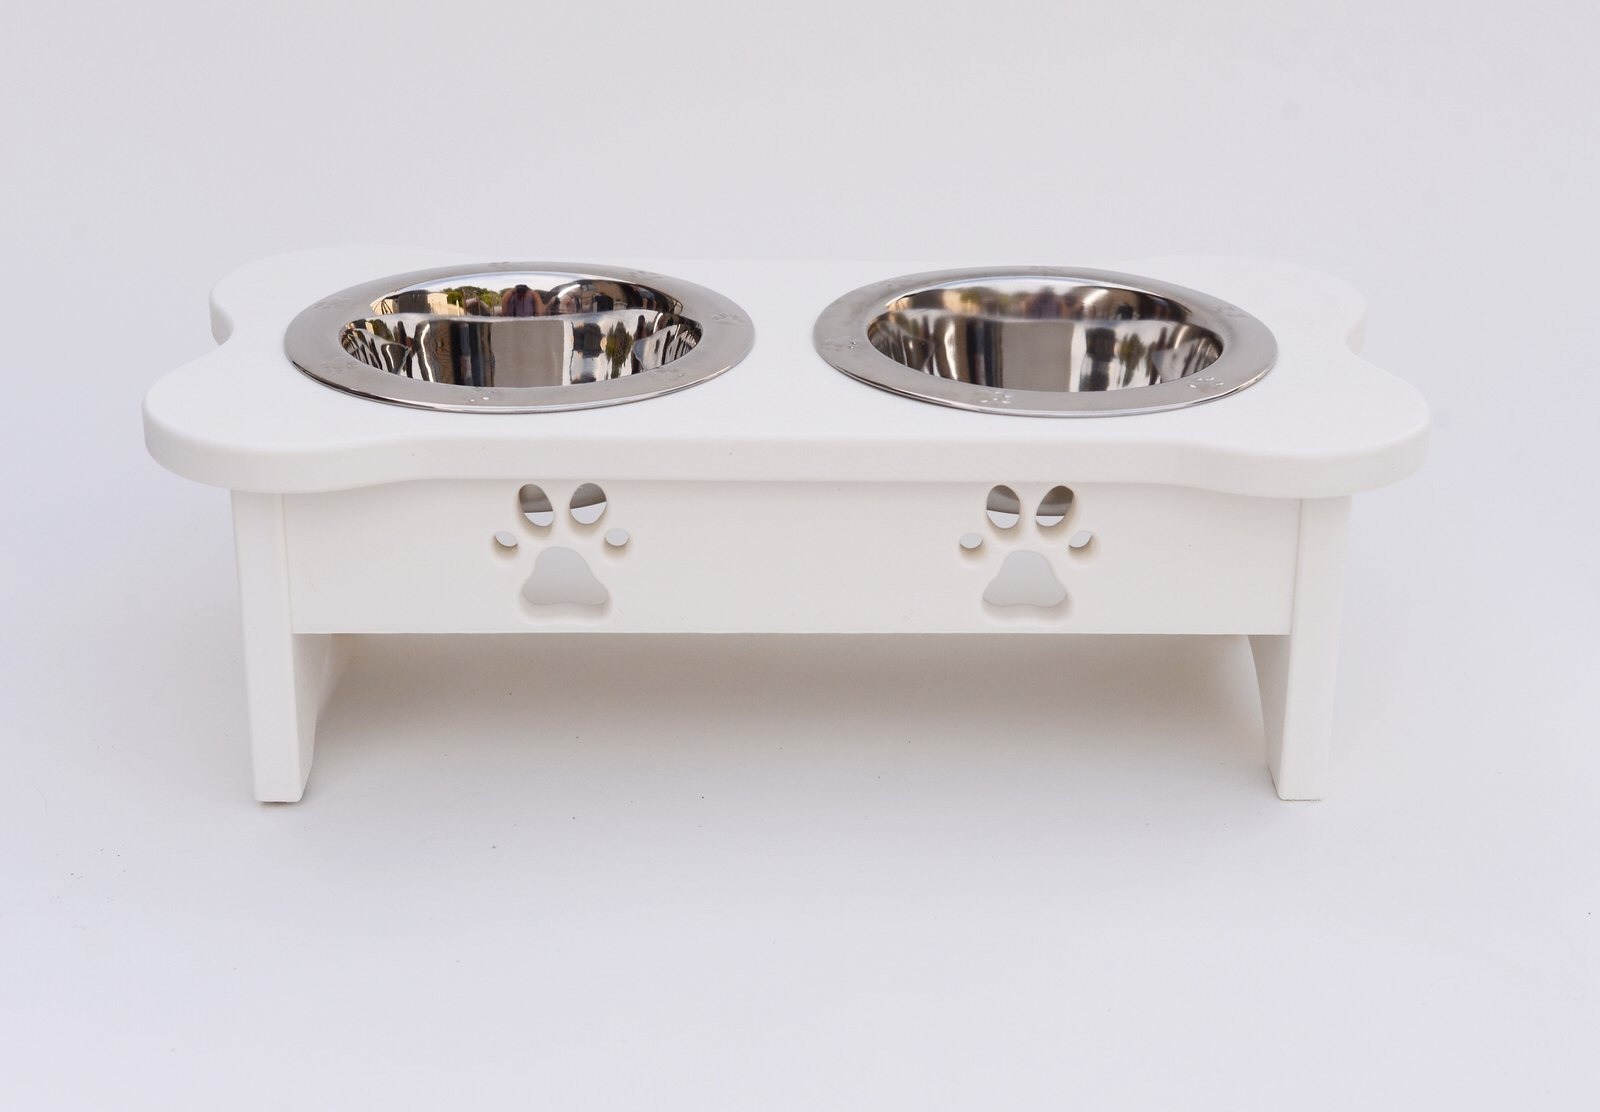 Indipets High with Carved Paws with Two Wide Rim Bowls, 2 quart/8.75'', White